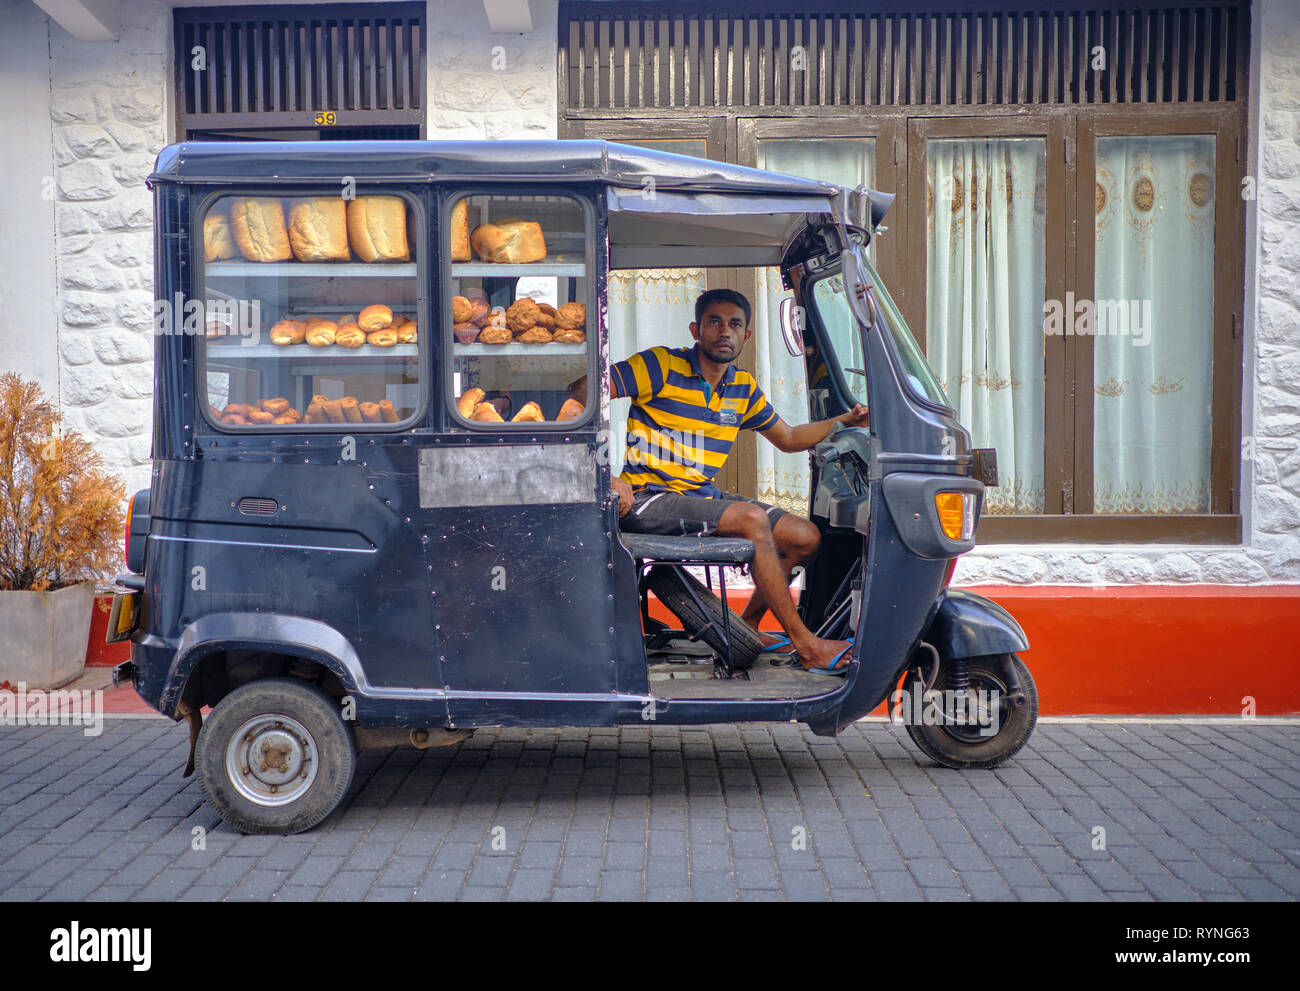 Bread delivery man in black tuktuk in the old part of Galle . Galle, Sri Lanka, January 9 2018 Stock Photo